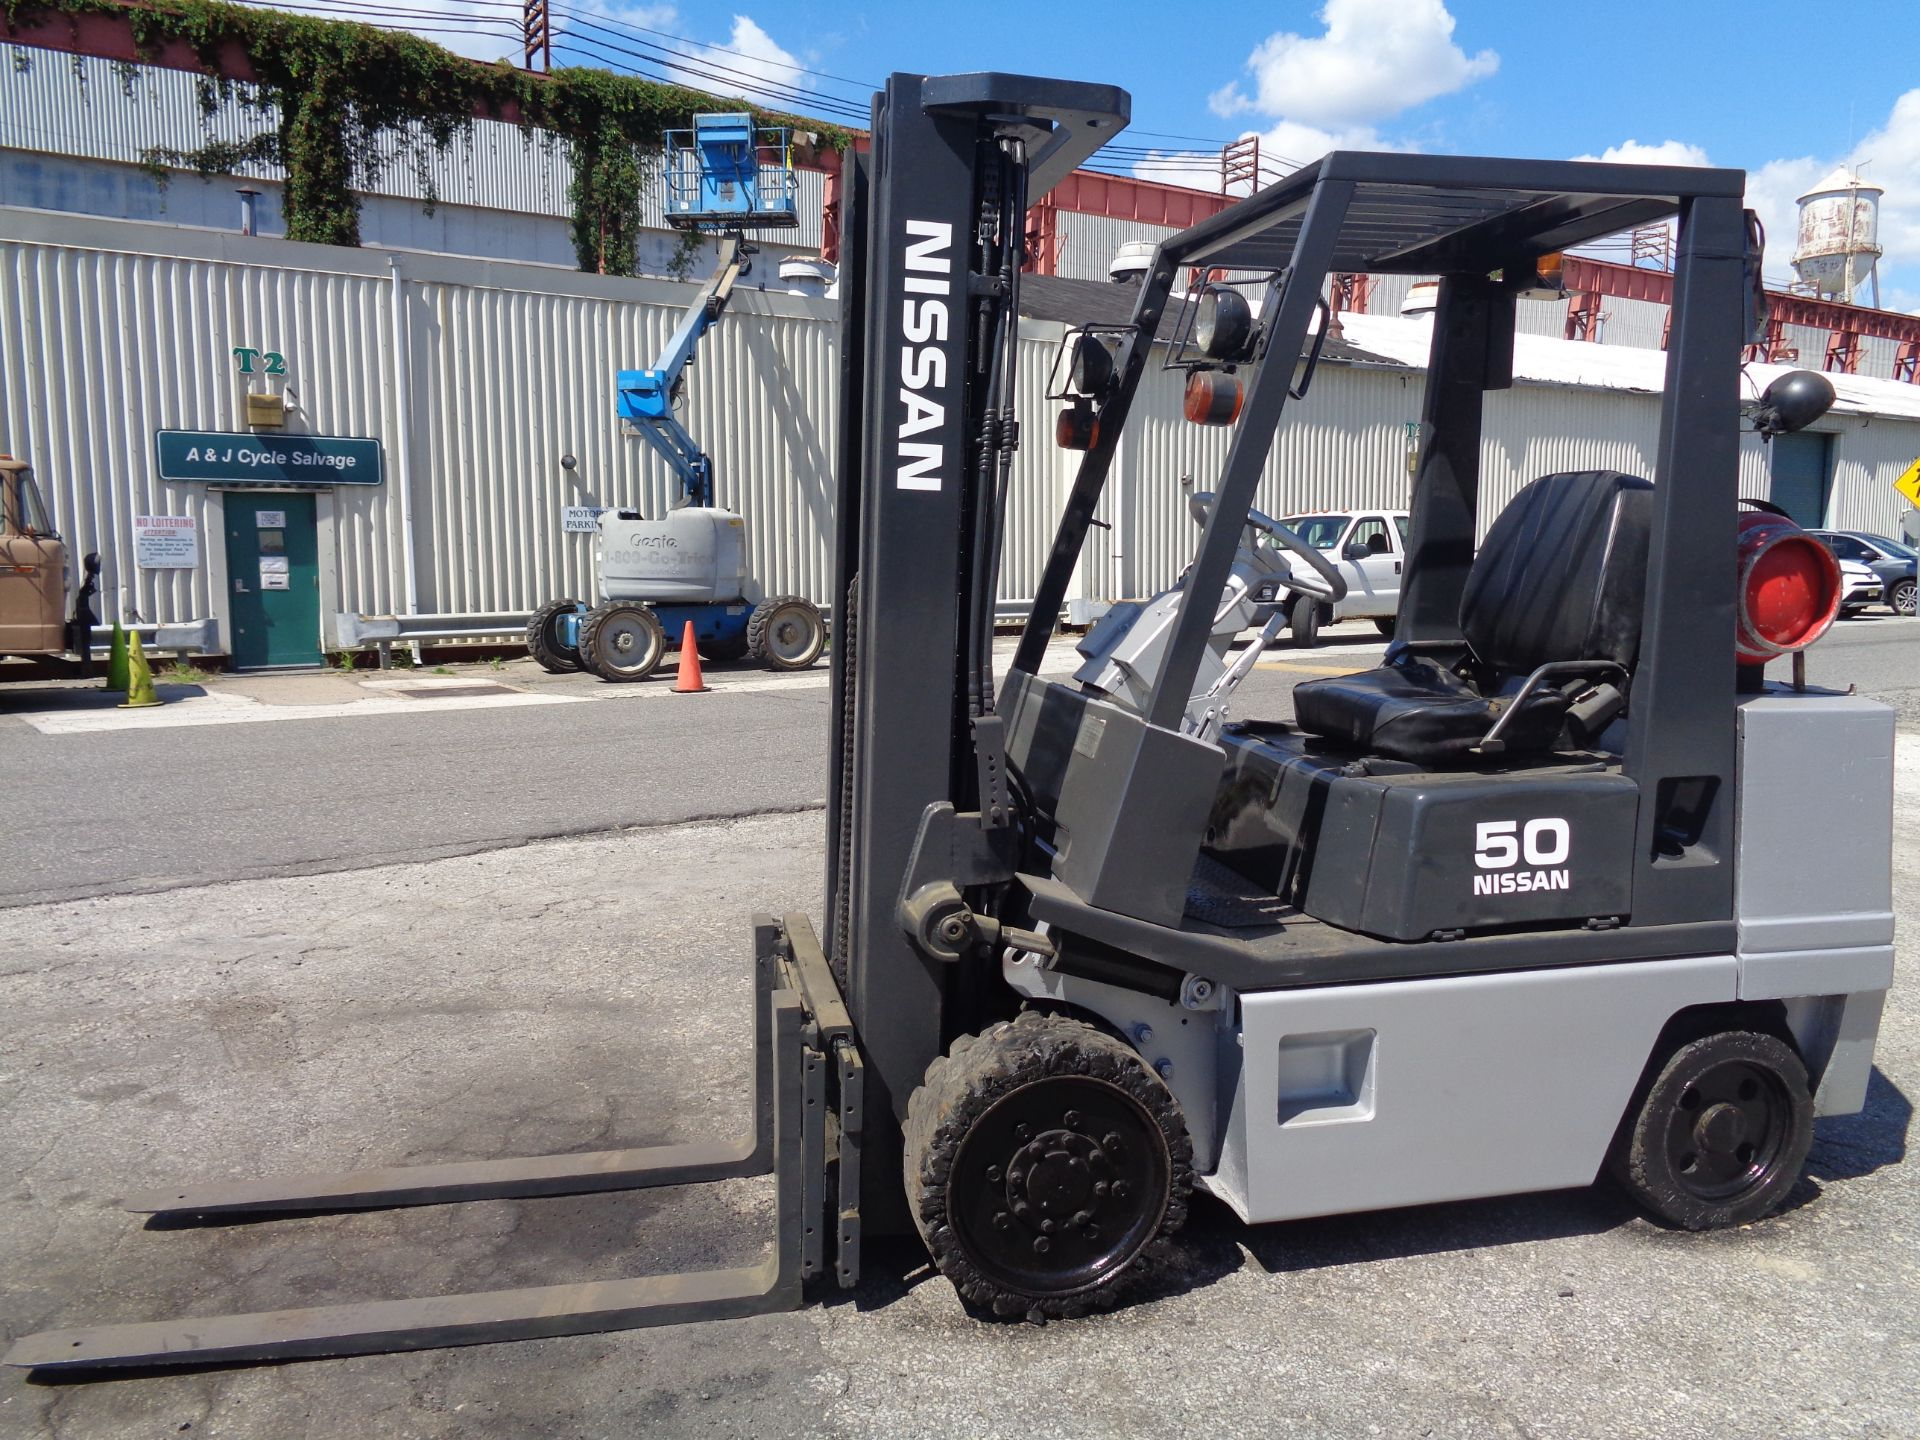 Nissan KCPH02A25PV 4,400 lb Forklift - Image 3 of 17